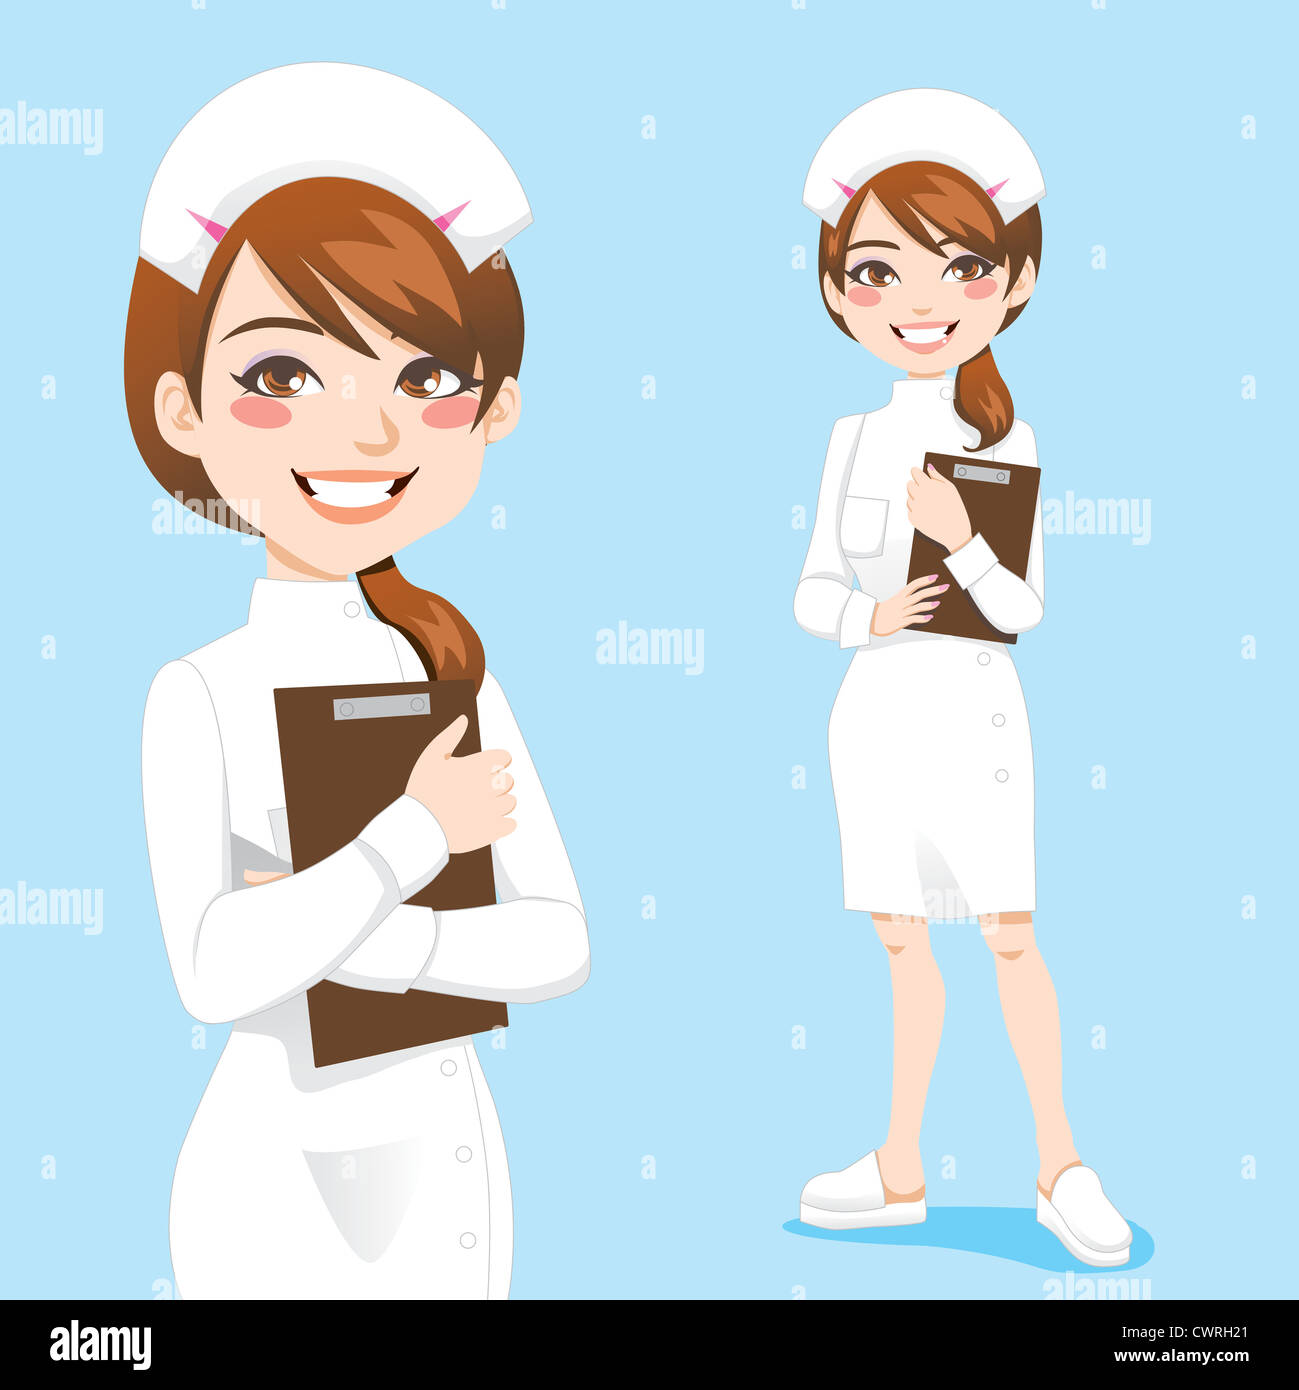 Nurse Cartoon High Resolution Stock Photography And Images Alamy